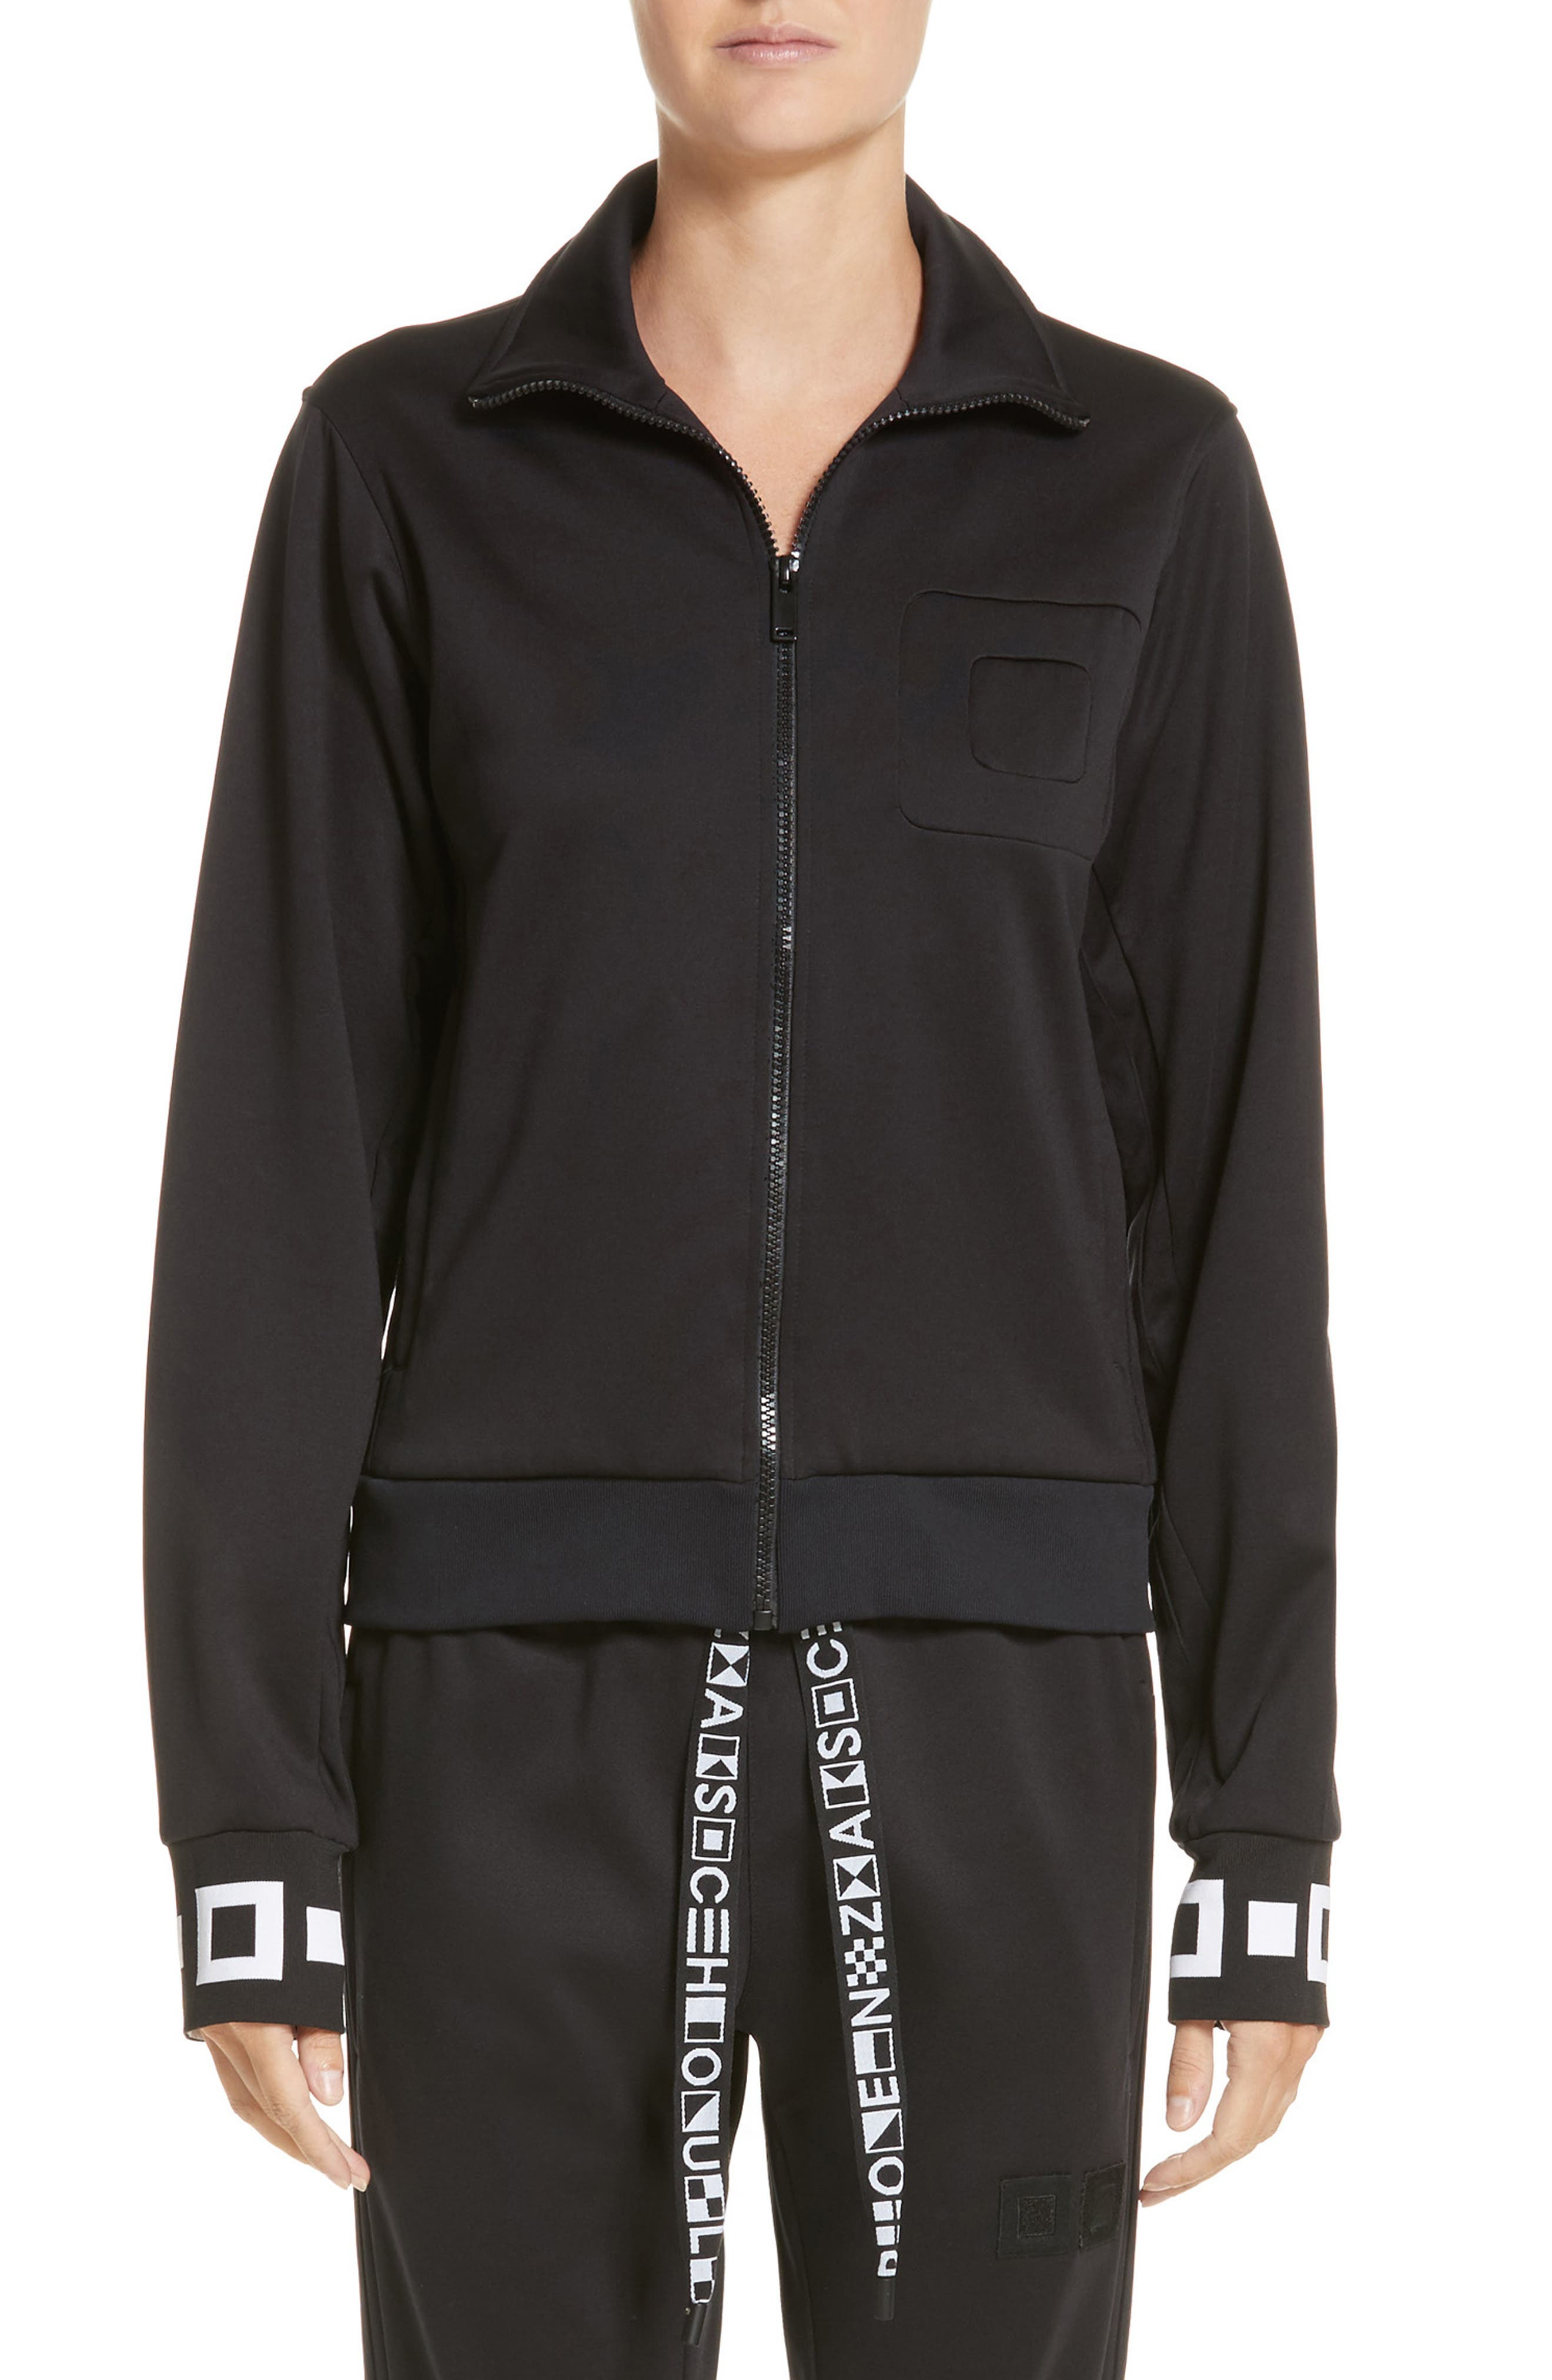 PSWL Jersey Track Jacket,                         Main,                         color, 001